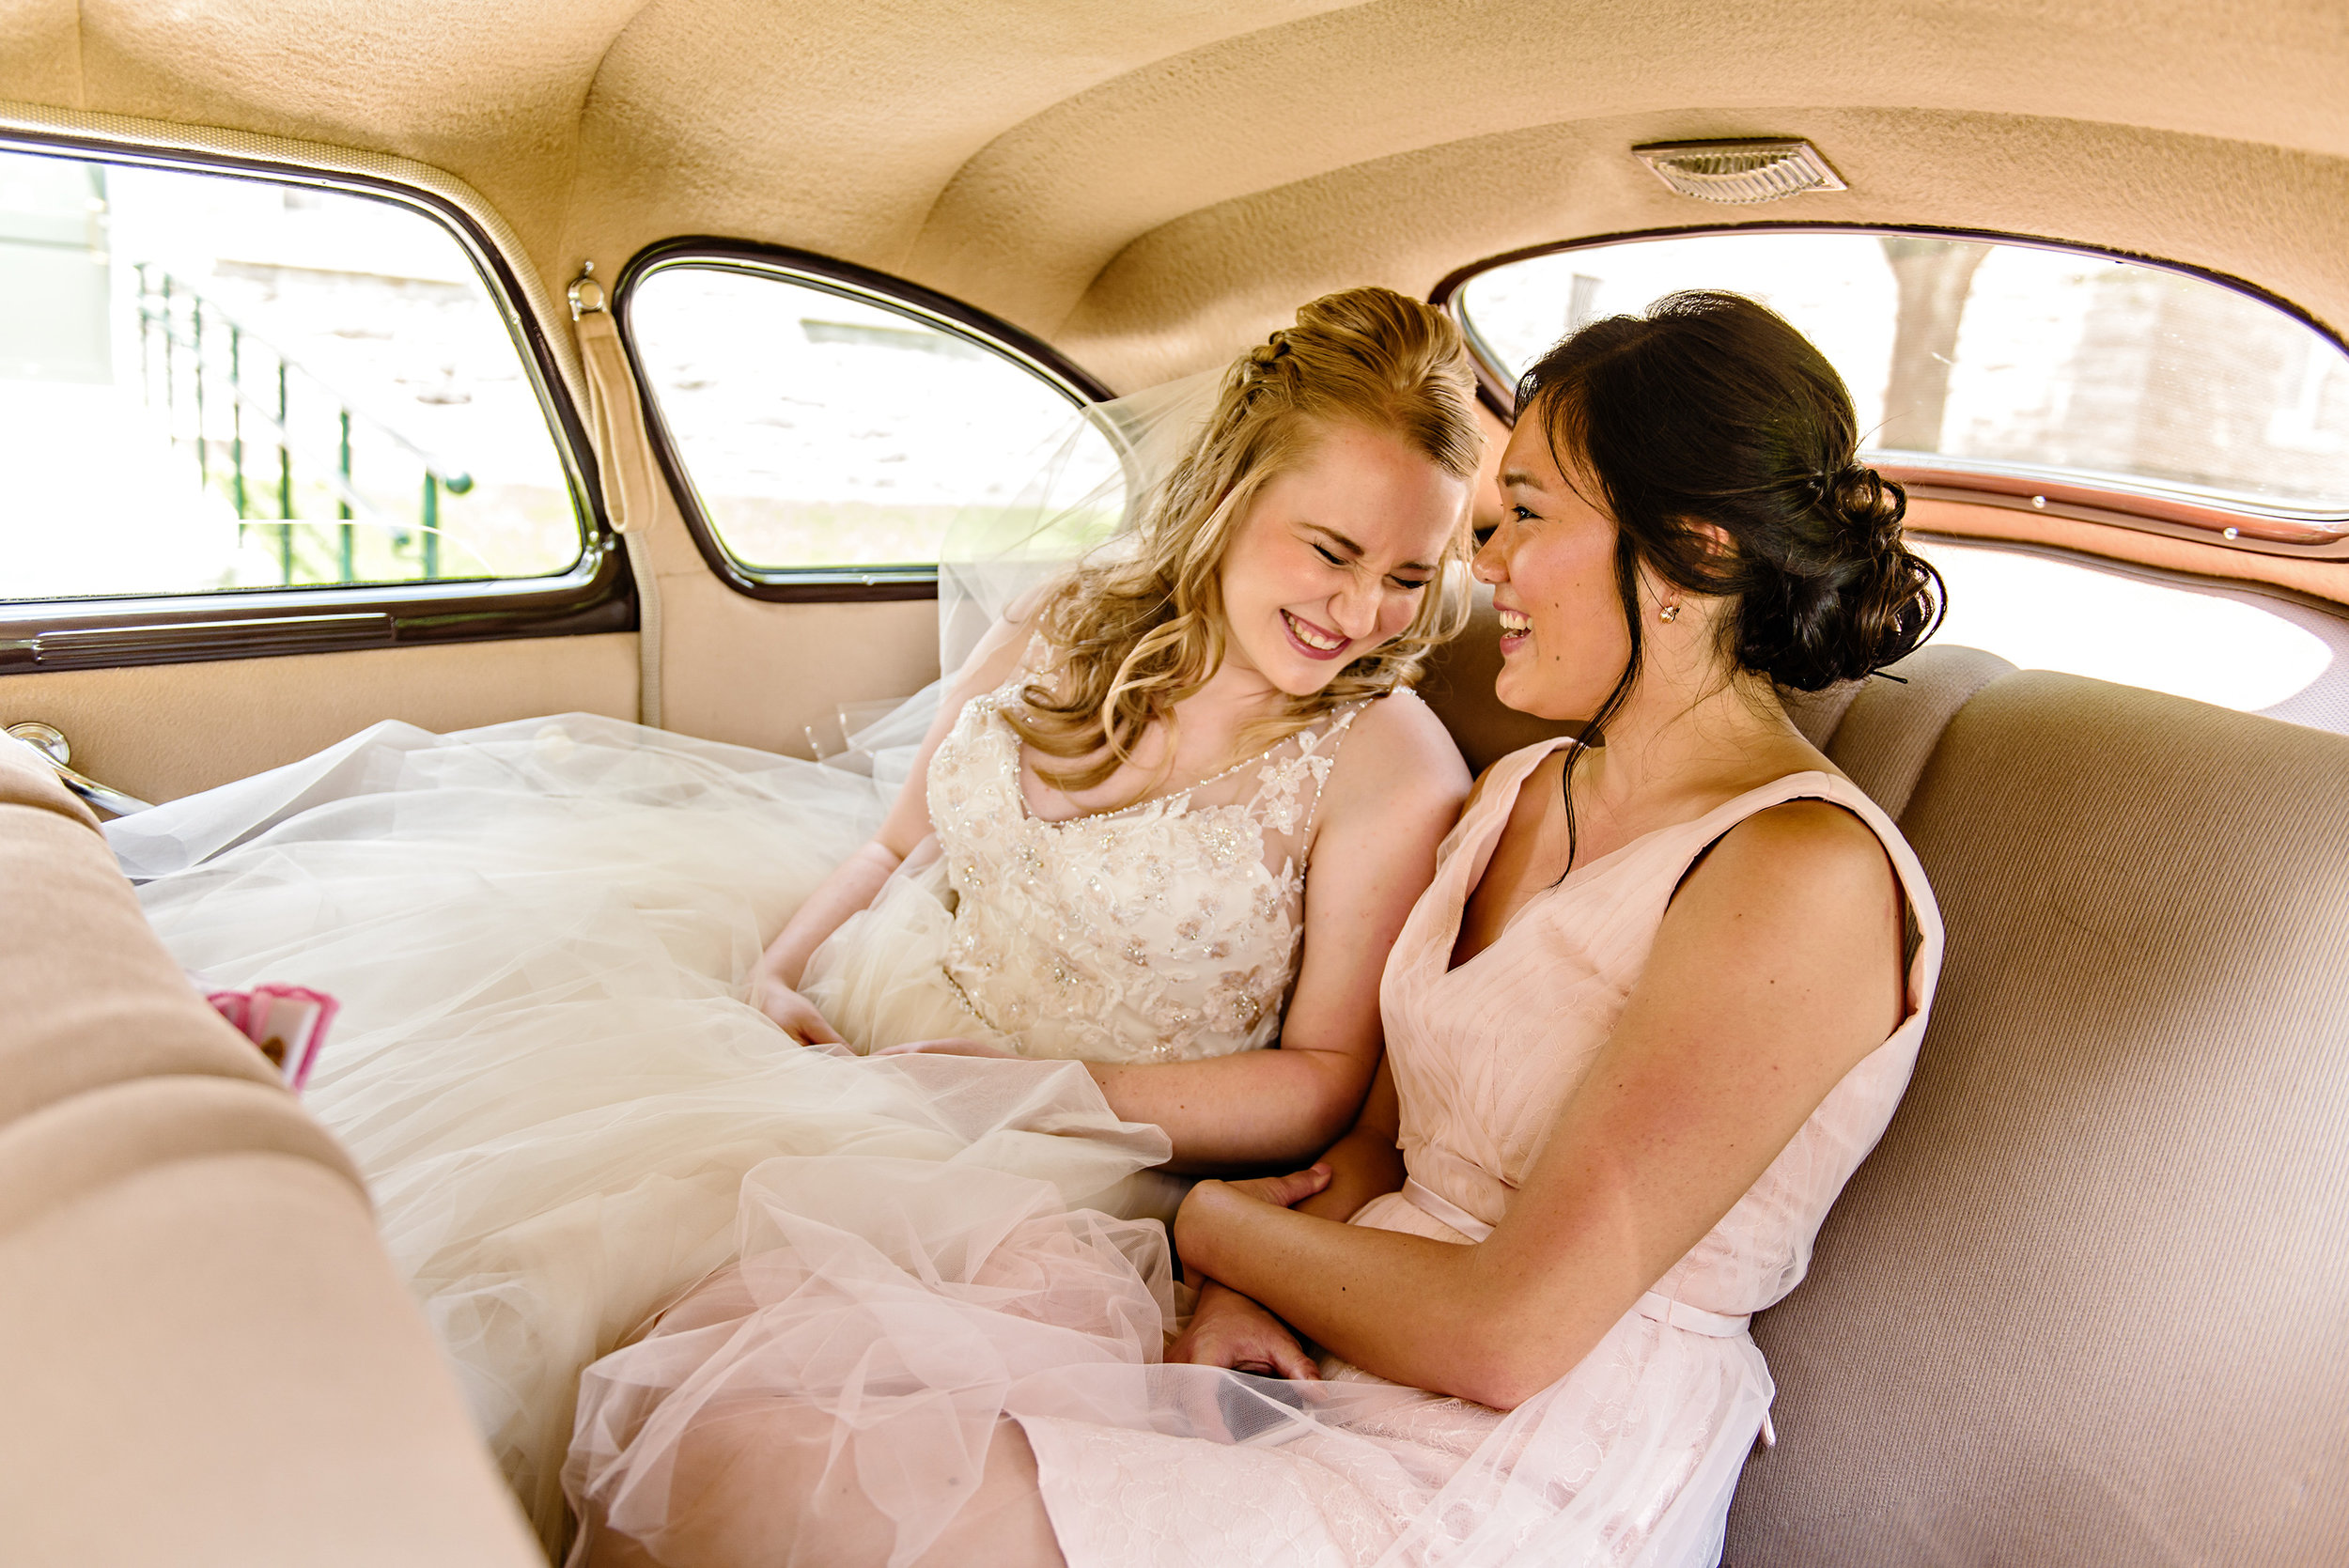 bride-and-bridesmaid-have-a-moment-in-the-limo-before-a-st-patricks-wedding-in-richmond-ontario.jpg